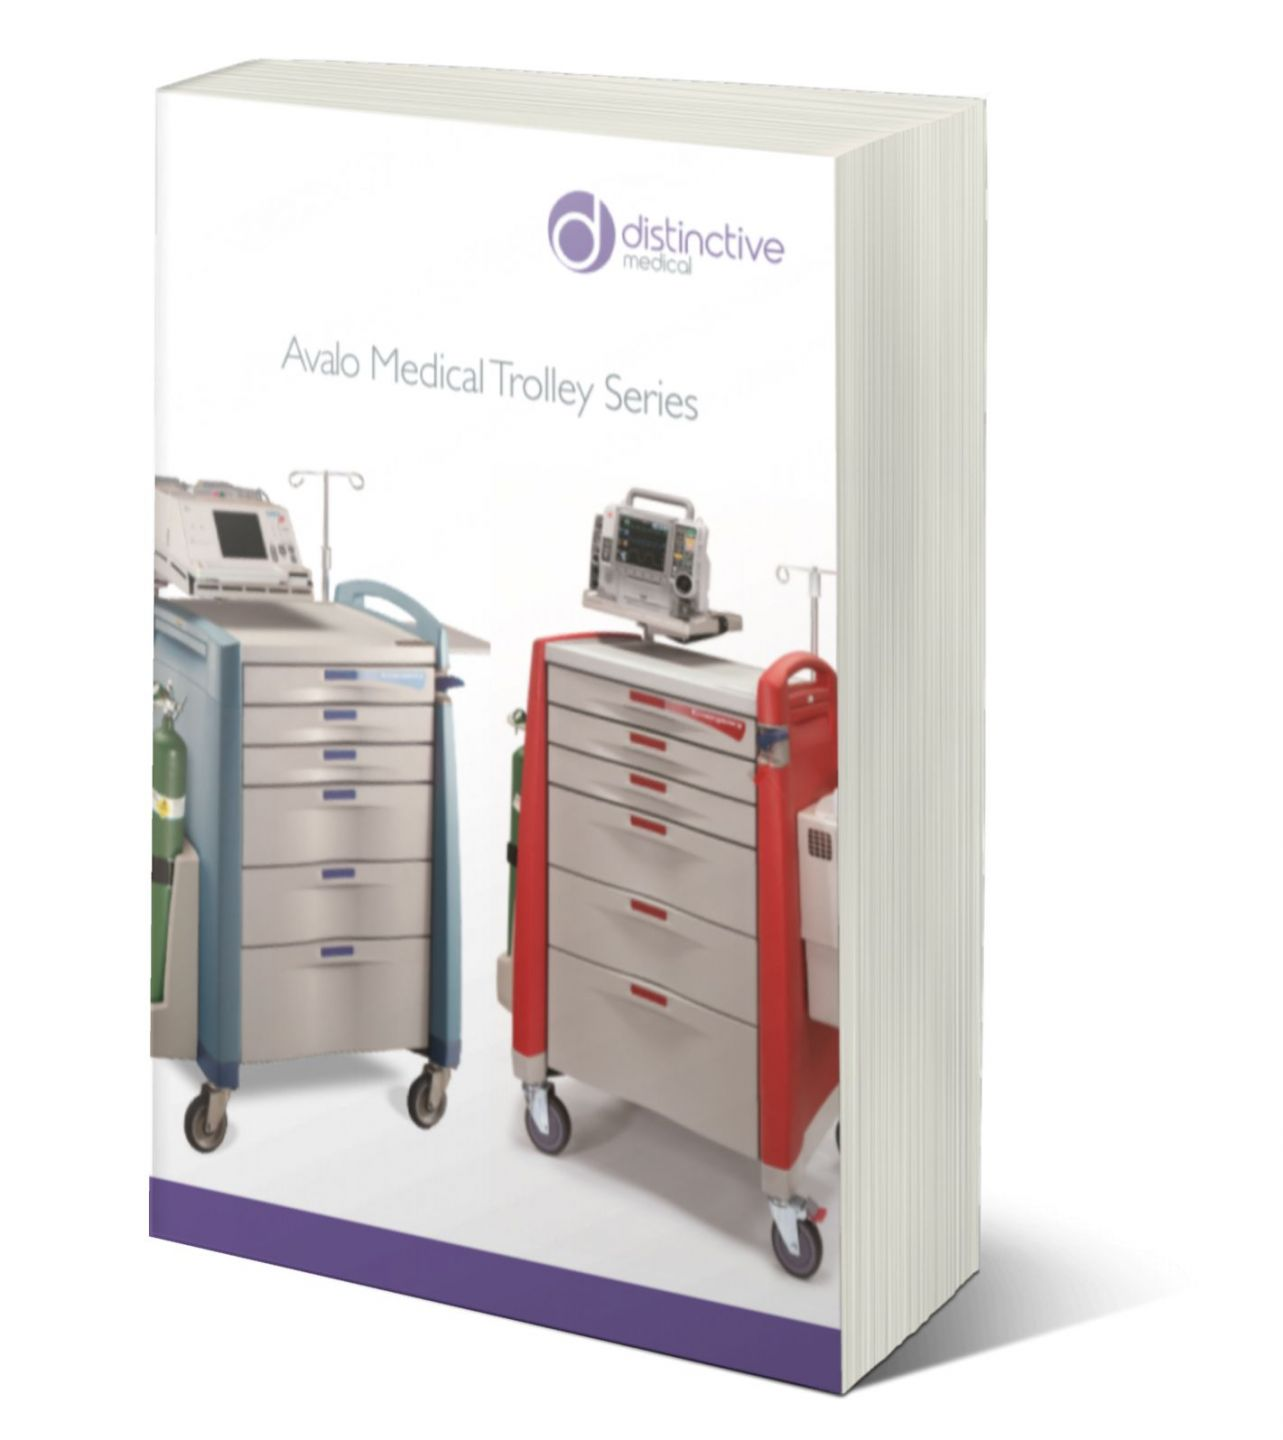 avalo medical trolley series brochure cover